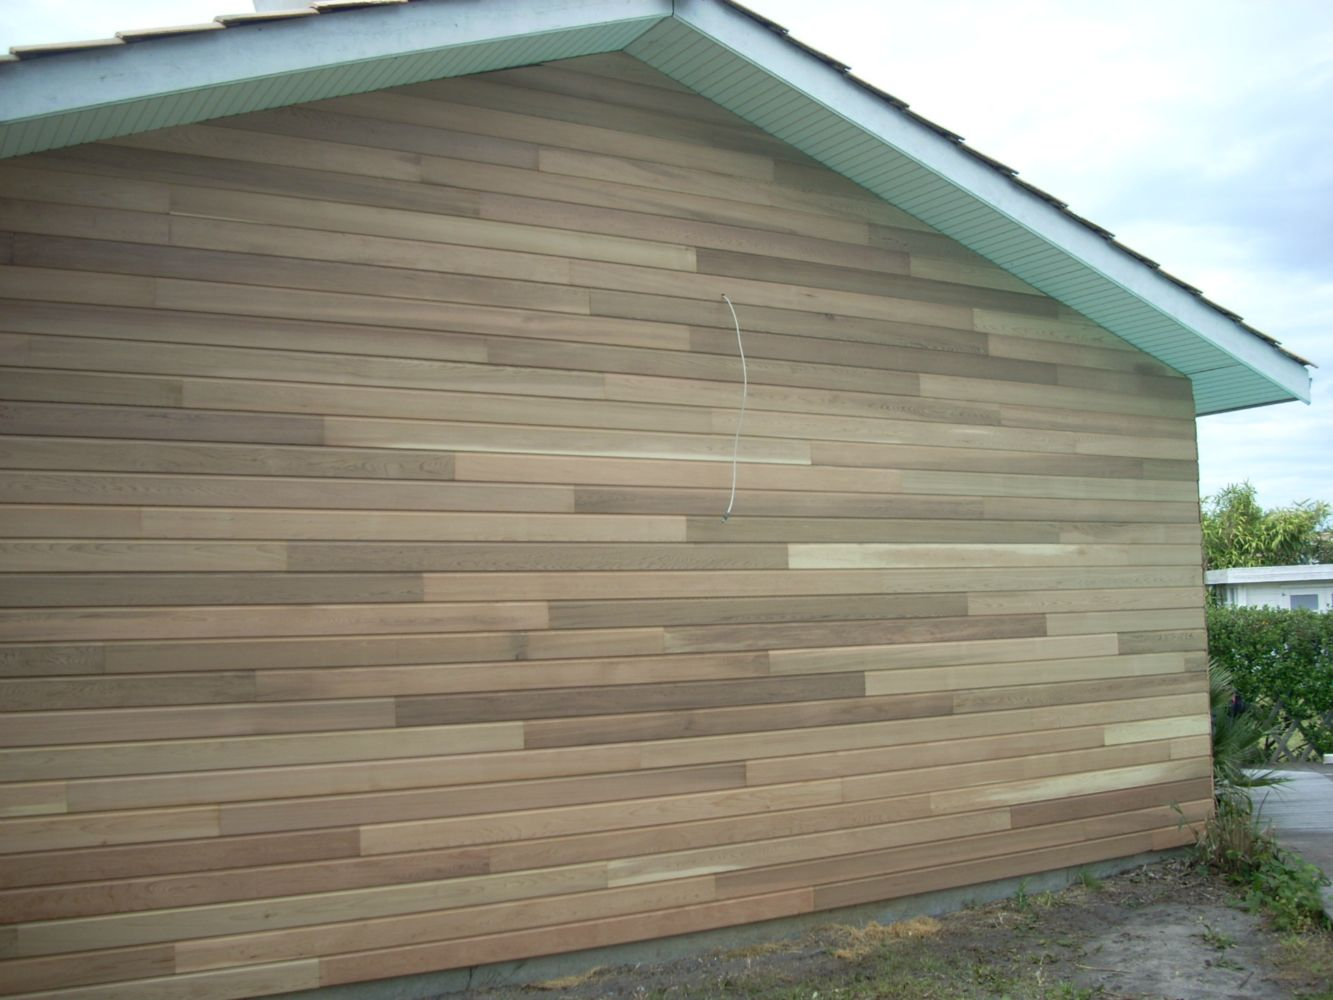 Bardage en red cedar en r novation artisan charpente for Renovation bardage bois exterieur